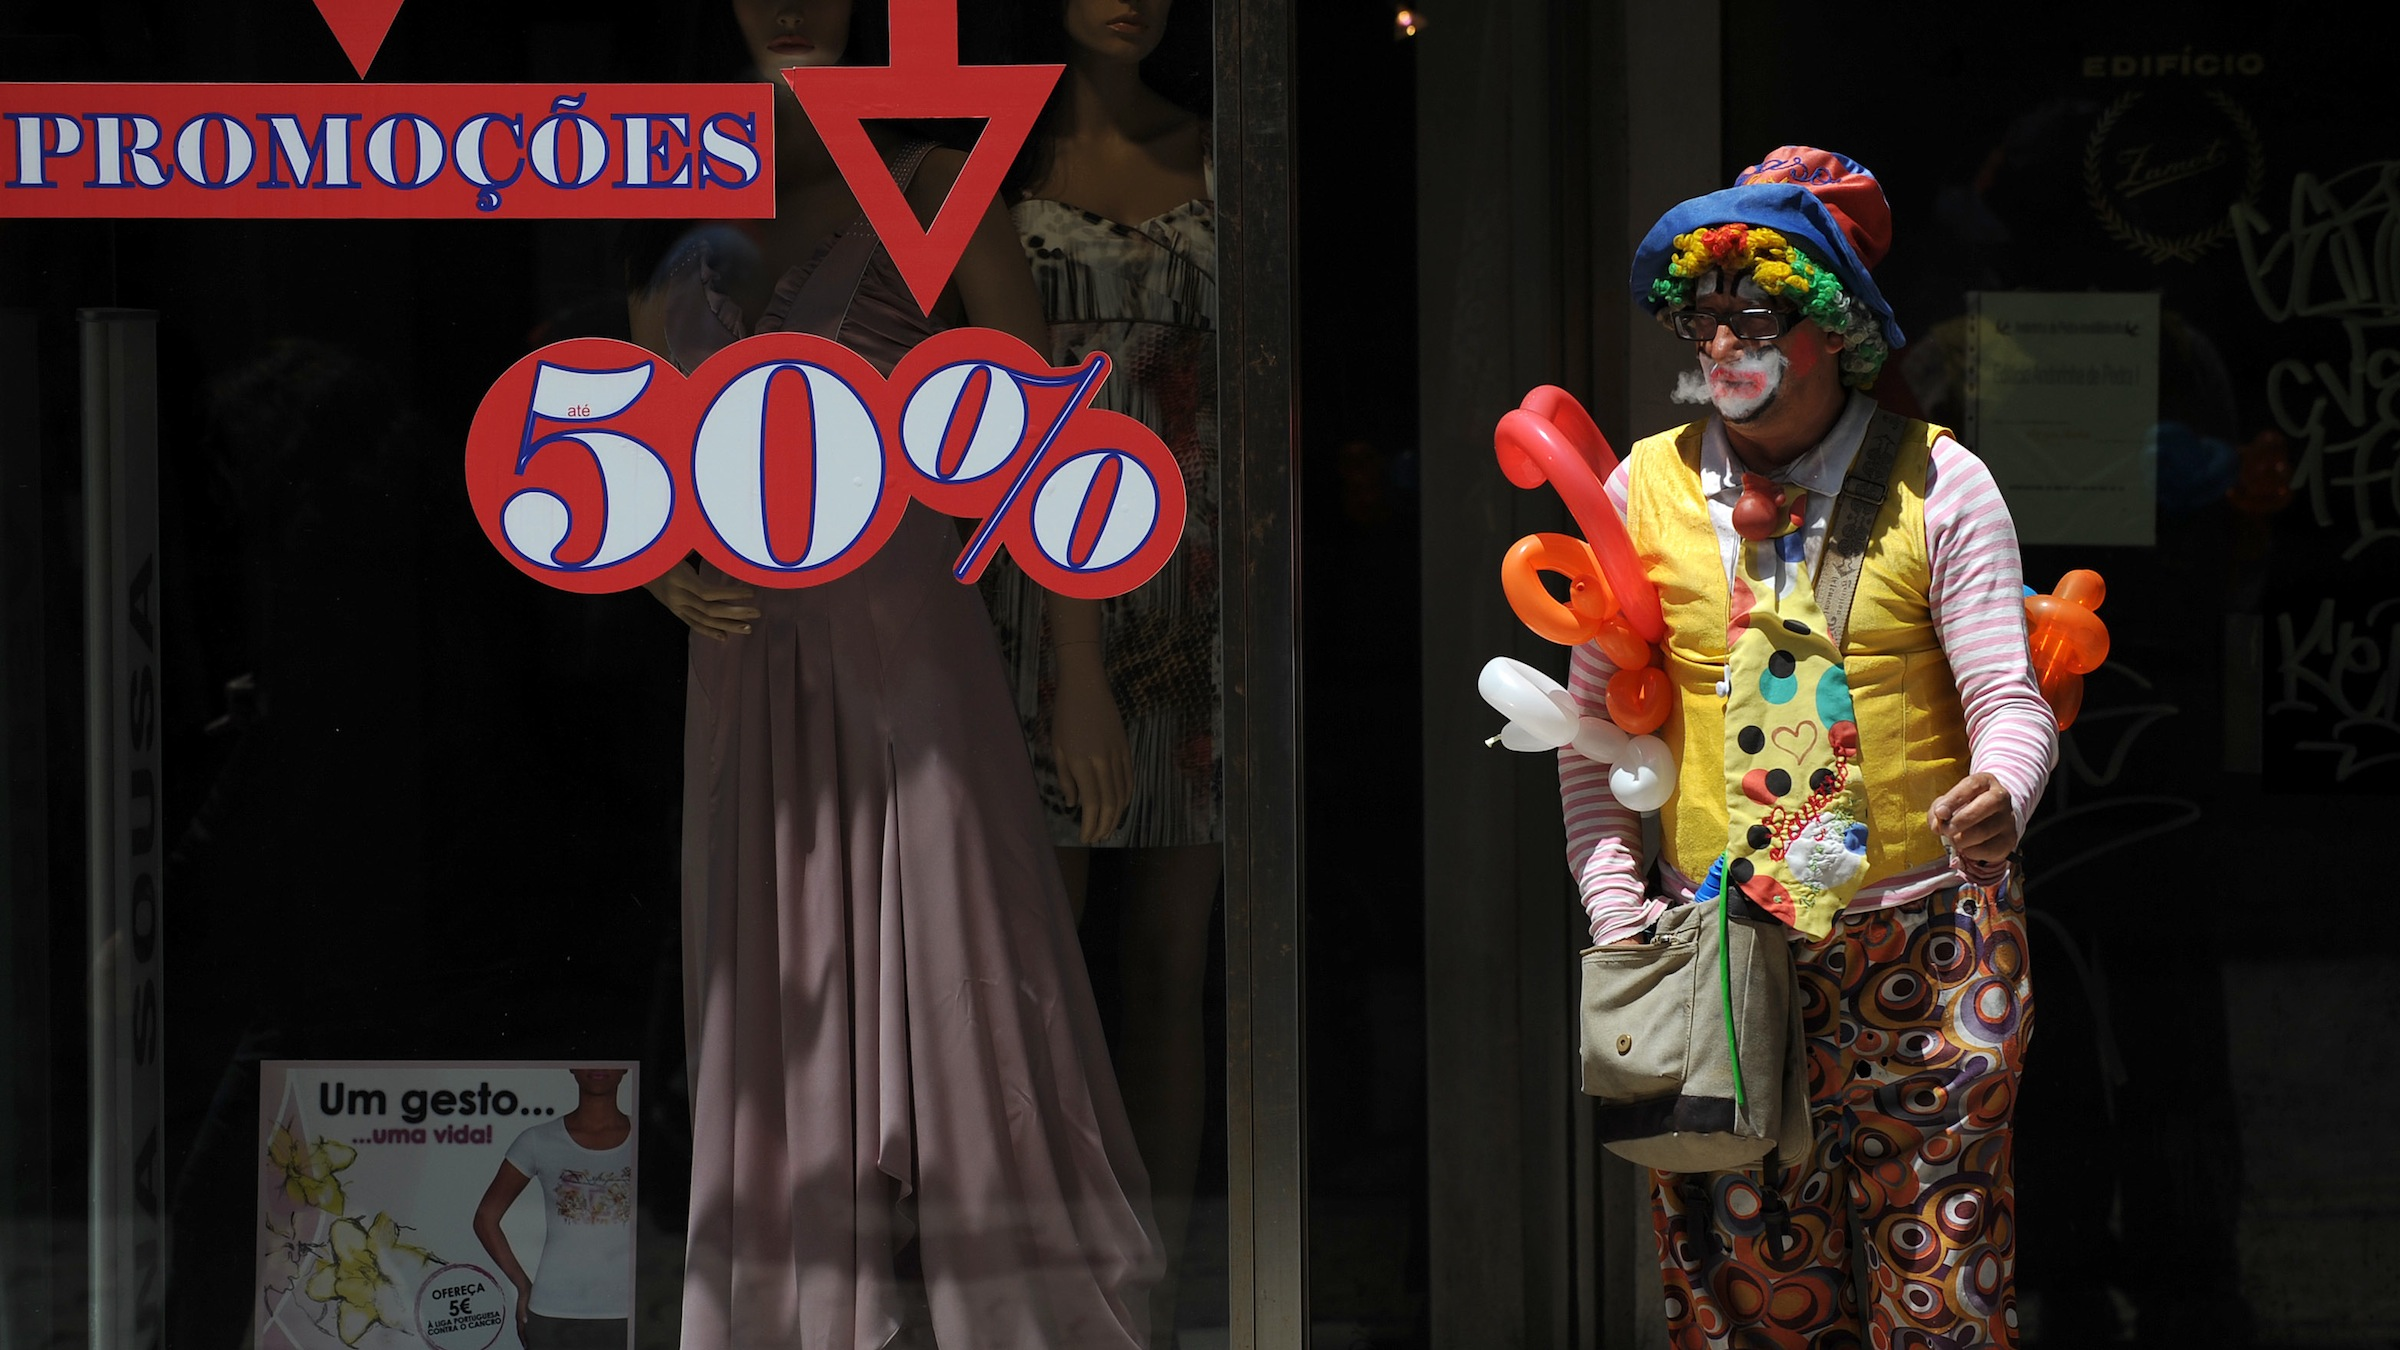 A street clown makes a pause for a cigarette, Thursday, July 7 2011, in downtown Porto, Portugal. Portugal's financial plight has deepened. Borrowing rates jumped higher and stocks slumped after its bonds were downgraded to junk status. Portugal's hopes of slowly emerging from its debt crisis were knocked by ratings agency Moody's, which downgraded Portugal's debt four notches and said the country will likely follow Greece in needing a second rescue package.(AP Photo/Paulo Duarte)